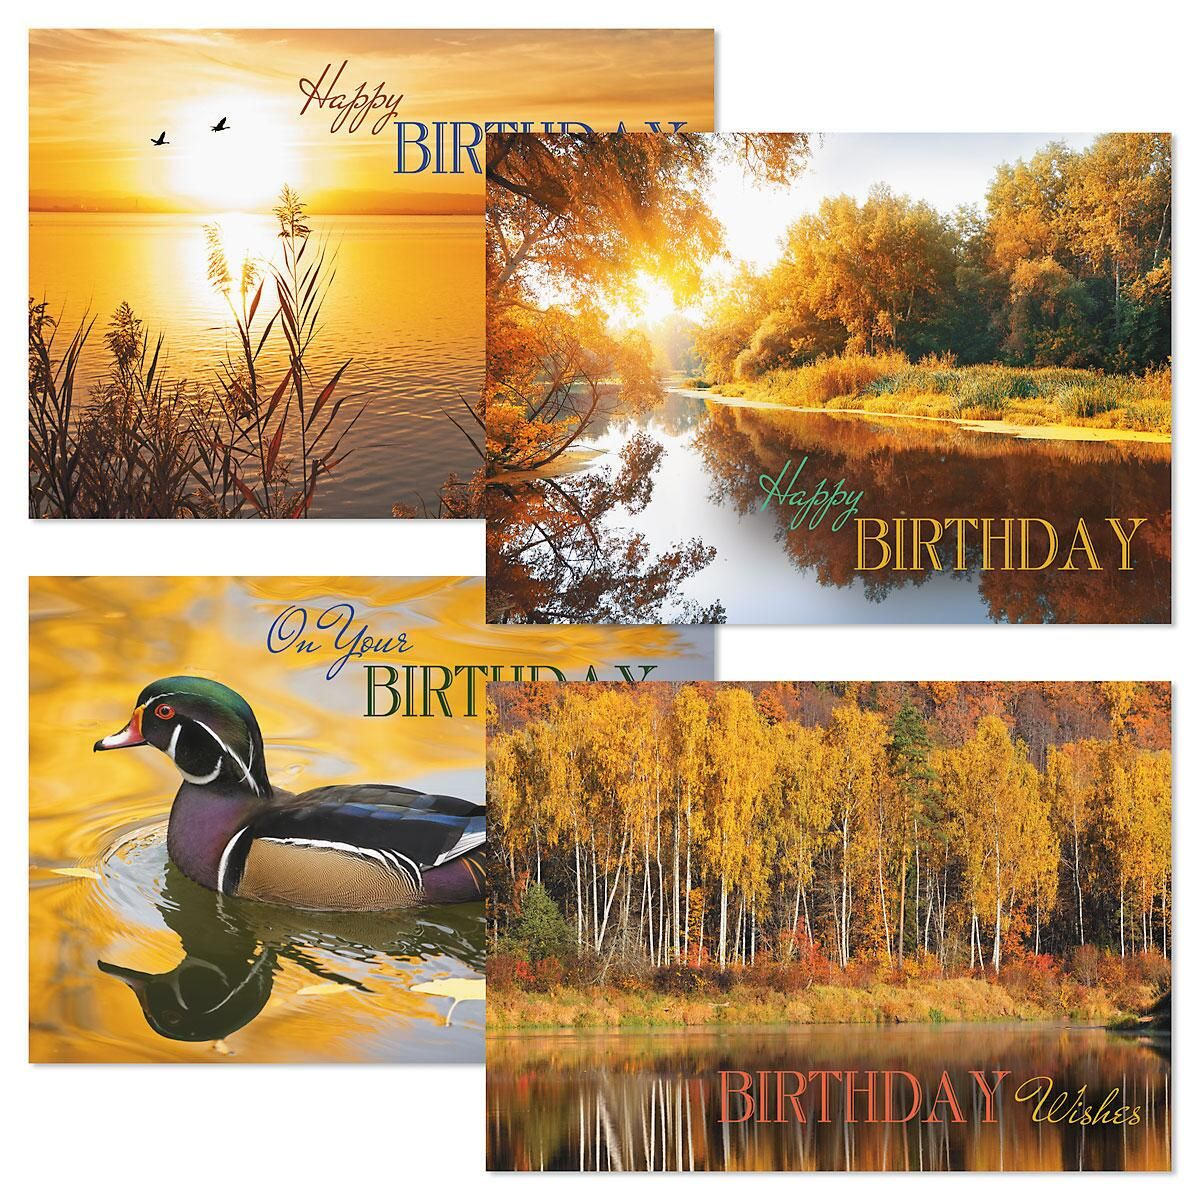 Sunrise Birthday Cards and Seals